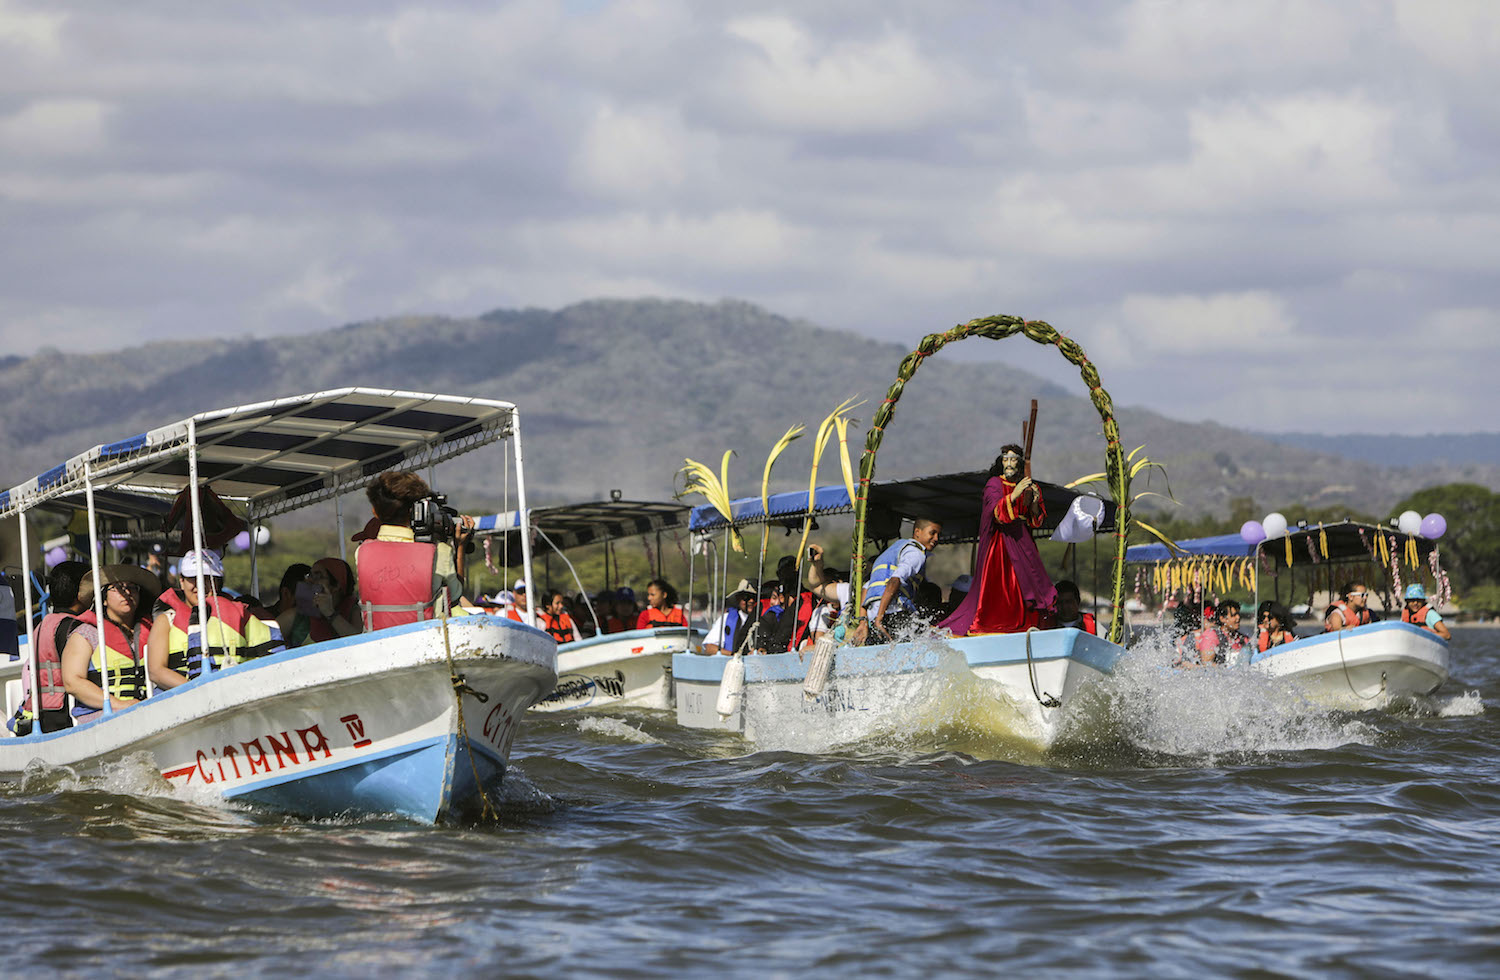 Catholic faithful take part in the aquatic Via Crucis, in Cocibolca lake, Granada some 48 kilometres from Managua, on March 26, 2018. The aquatic Via Crucis is carried out on boats between the islets of the Nicaragua -Cocibolca- lake. / AFP PHOTO / INTI OCON        (Photo credit should read INTI OCON/AFP/Getty Images)